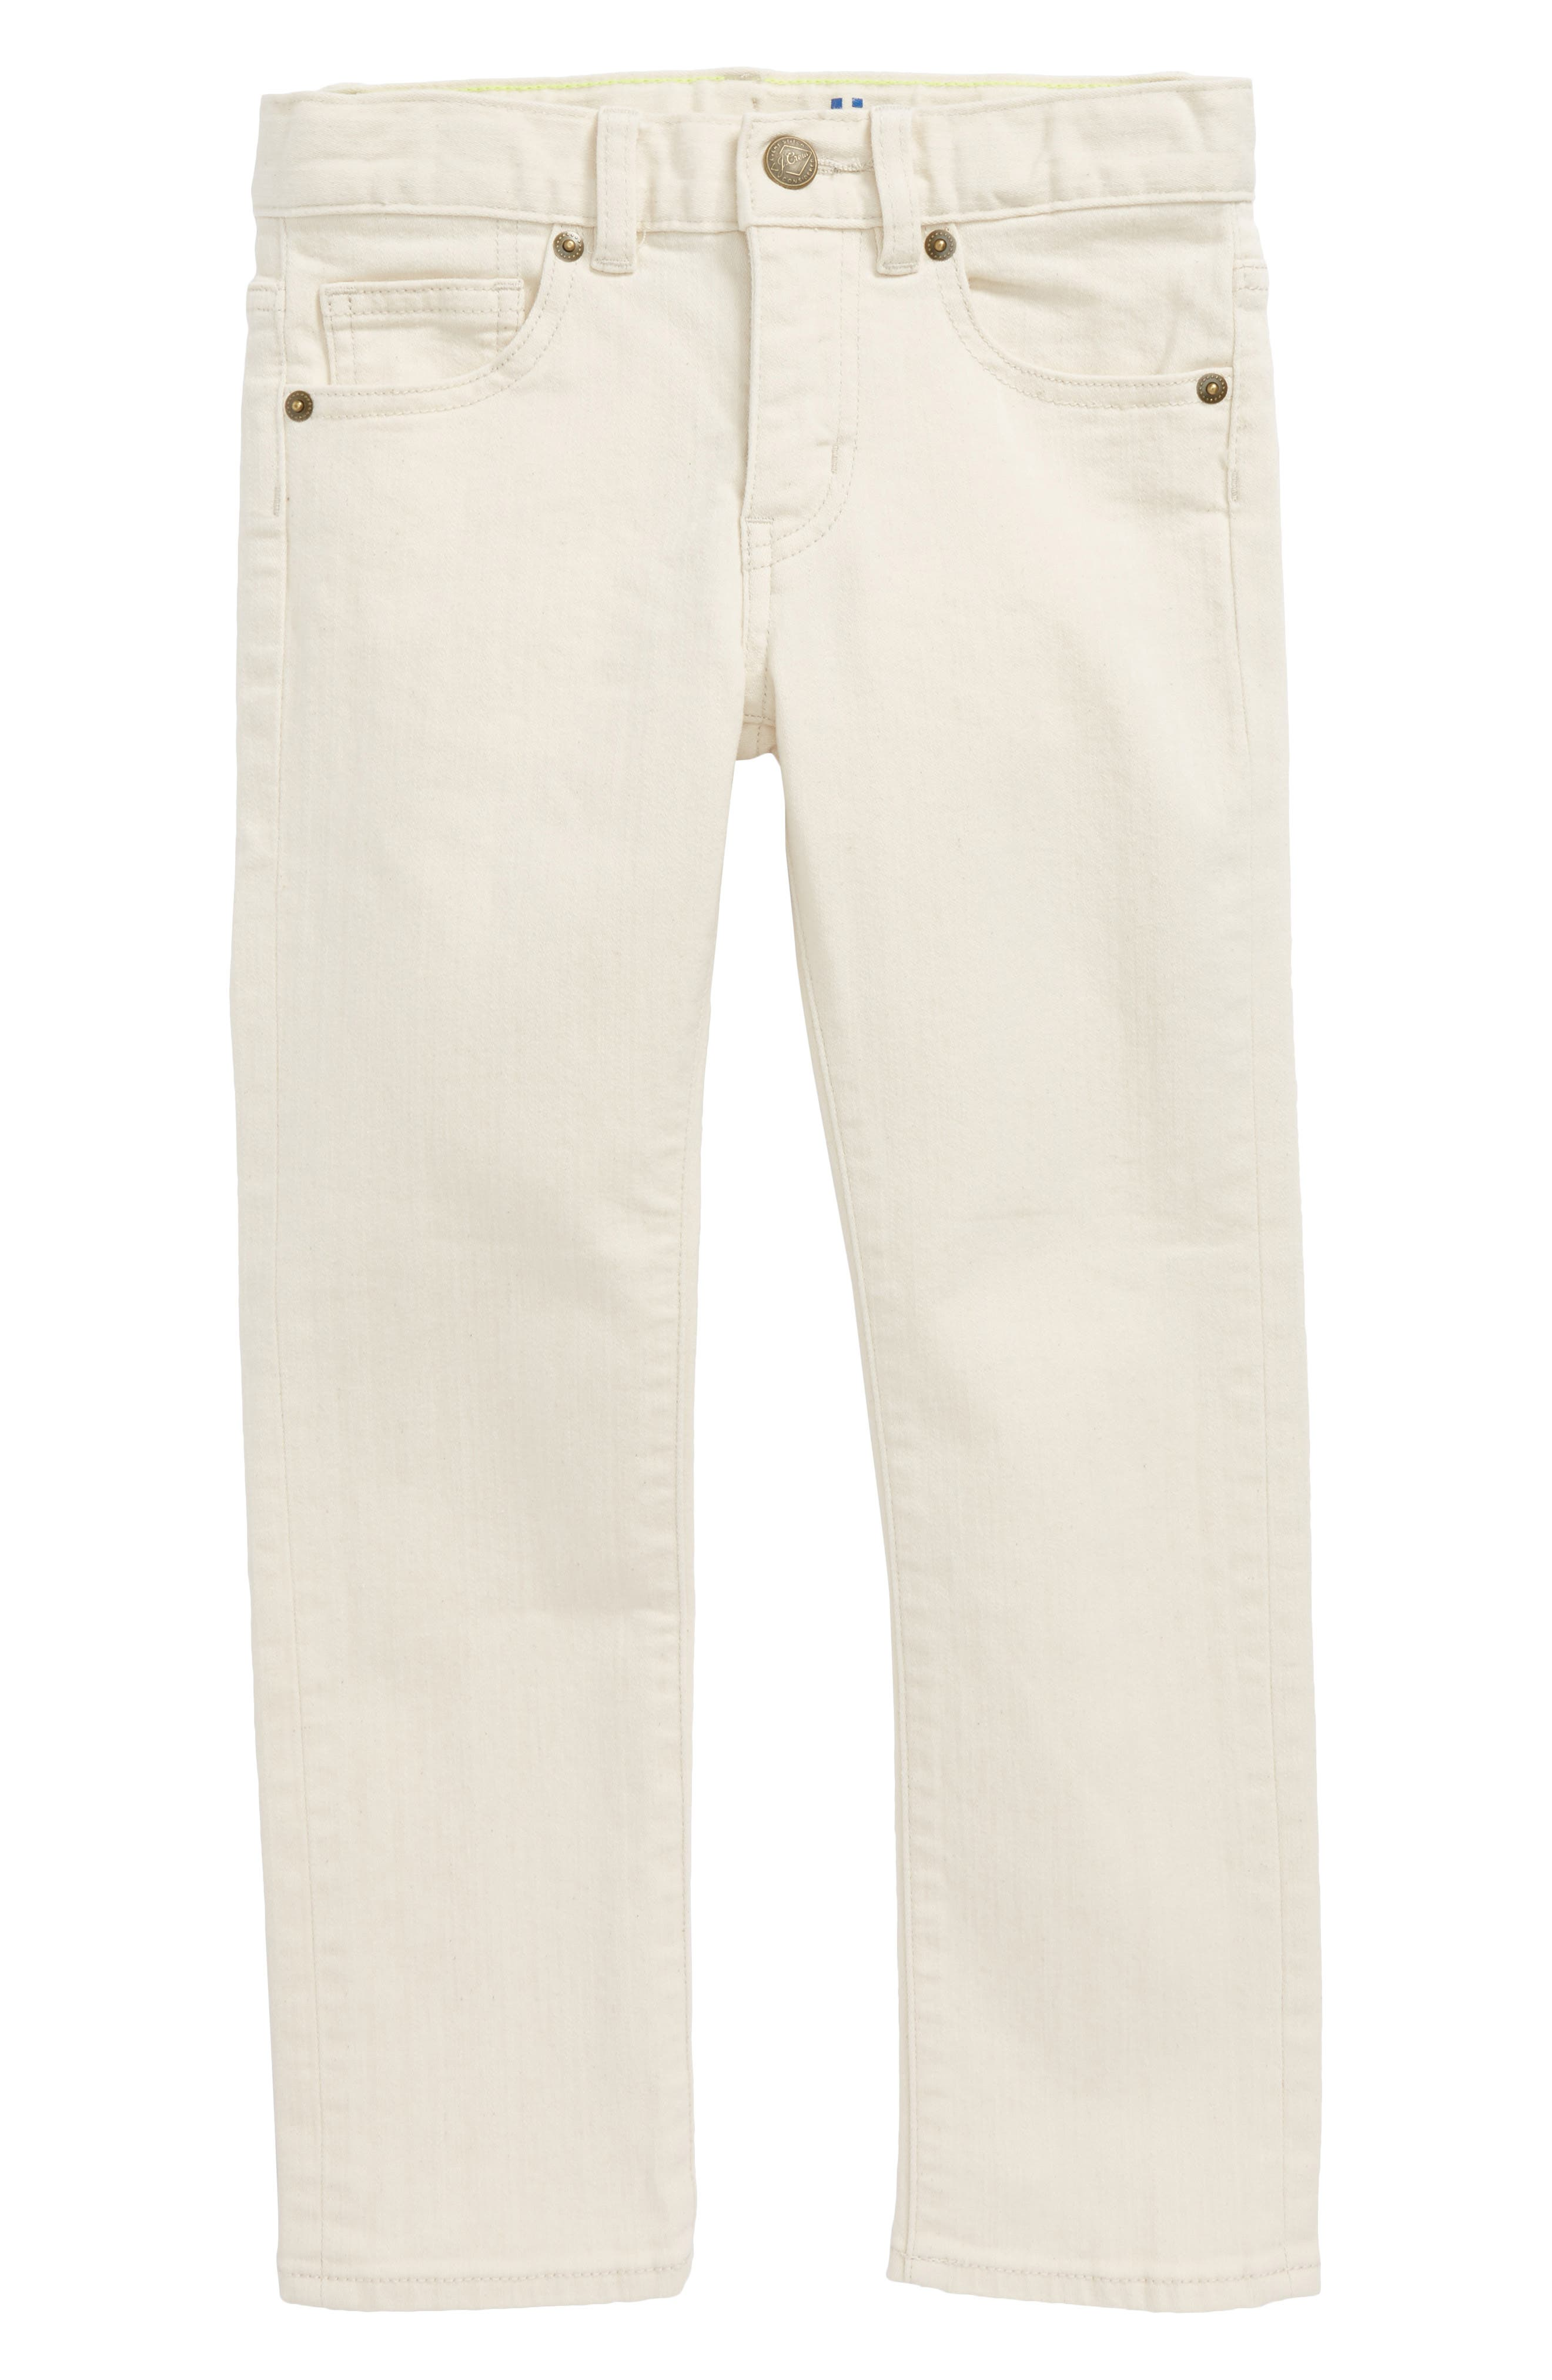 Ecru Slim Fit Pants,                             Main thumbnail 1, color,                             Ecru